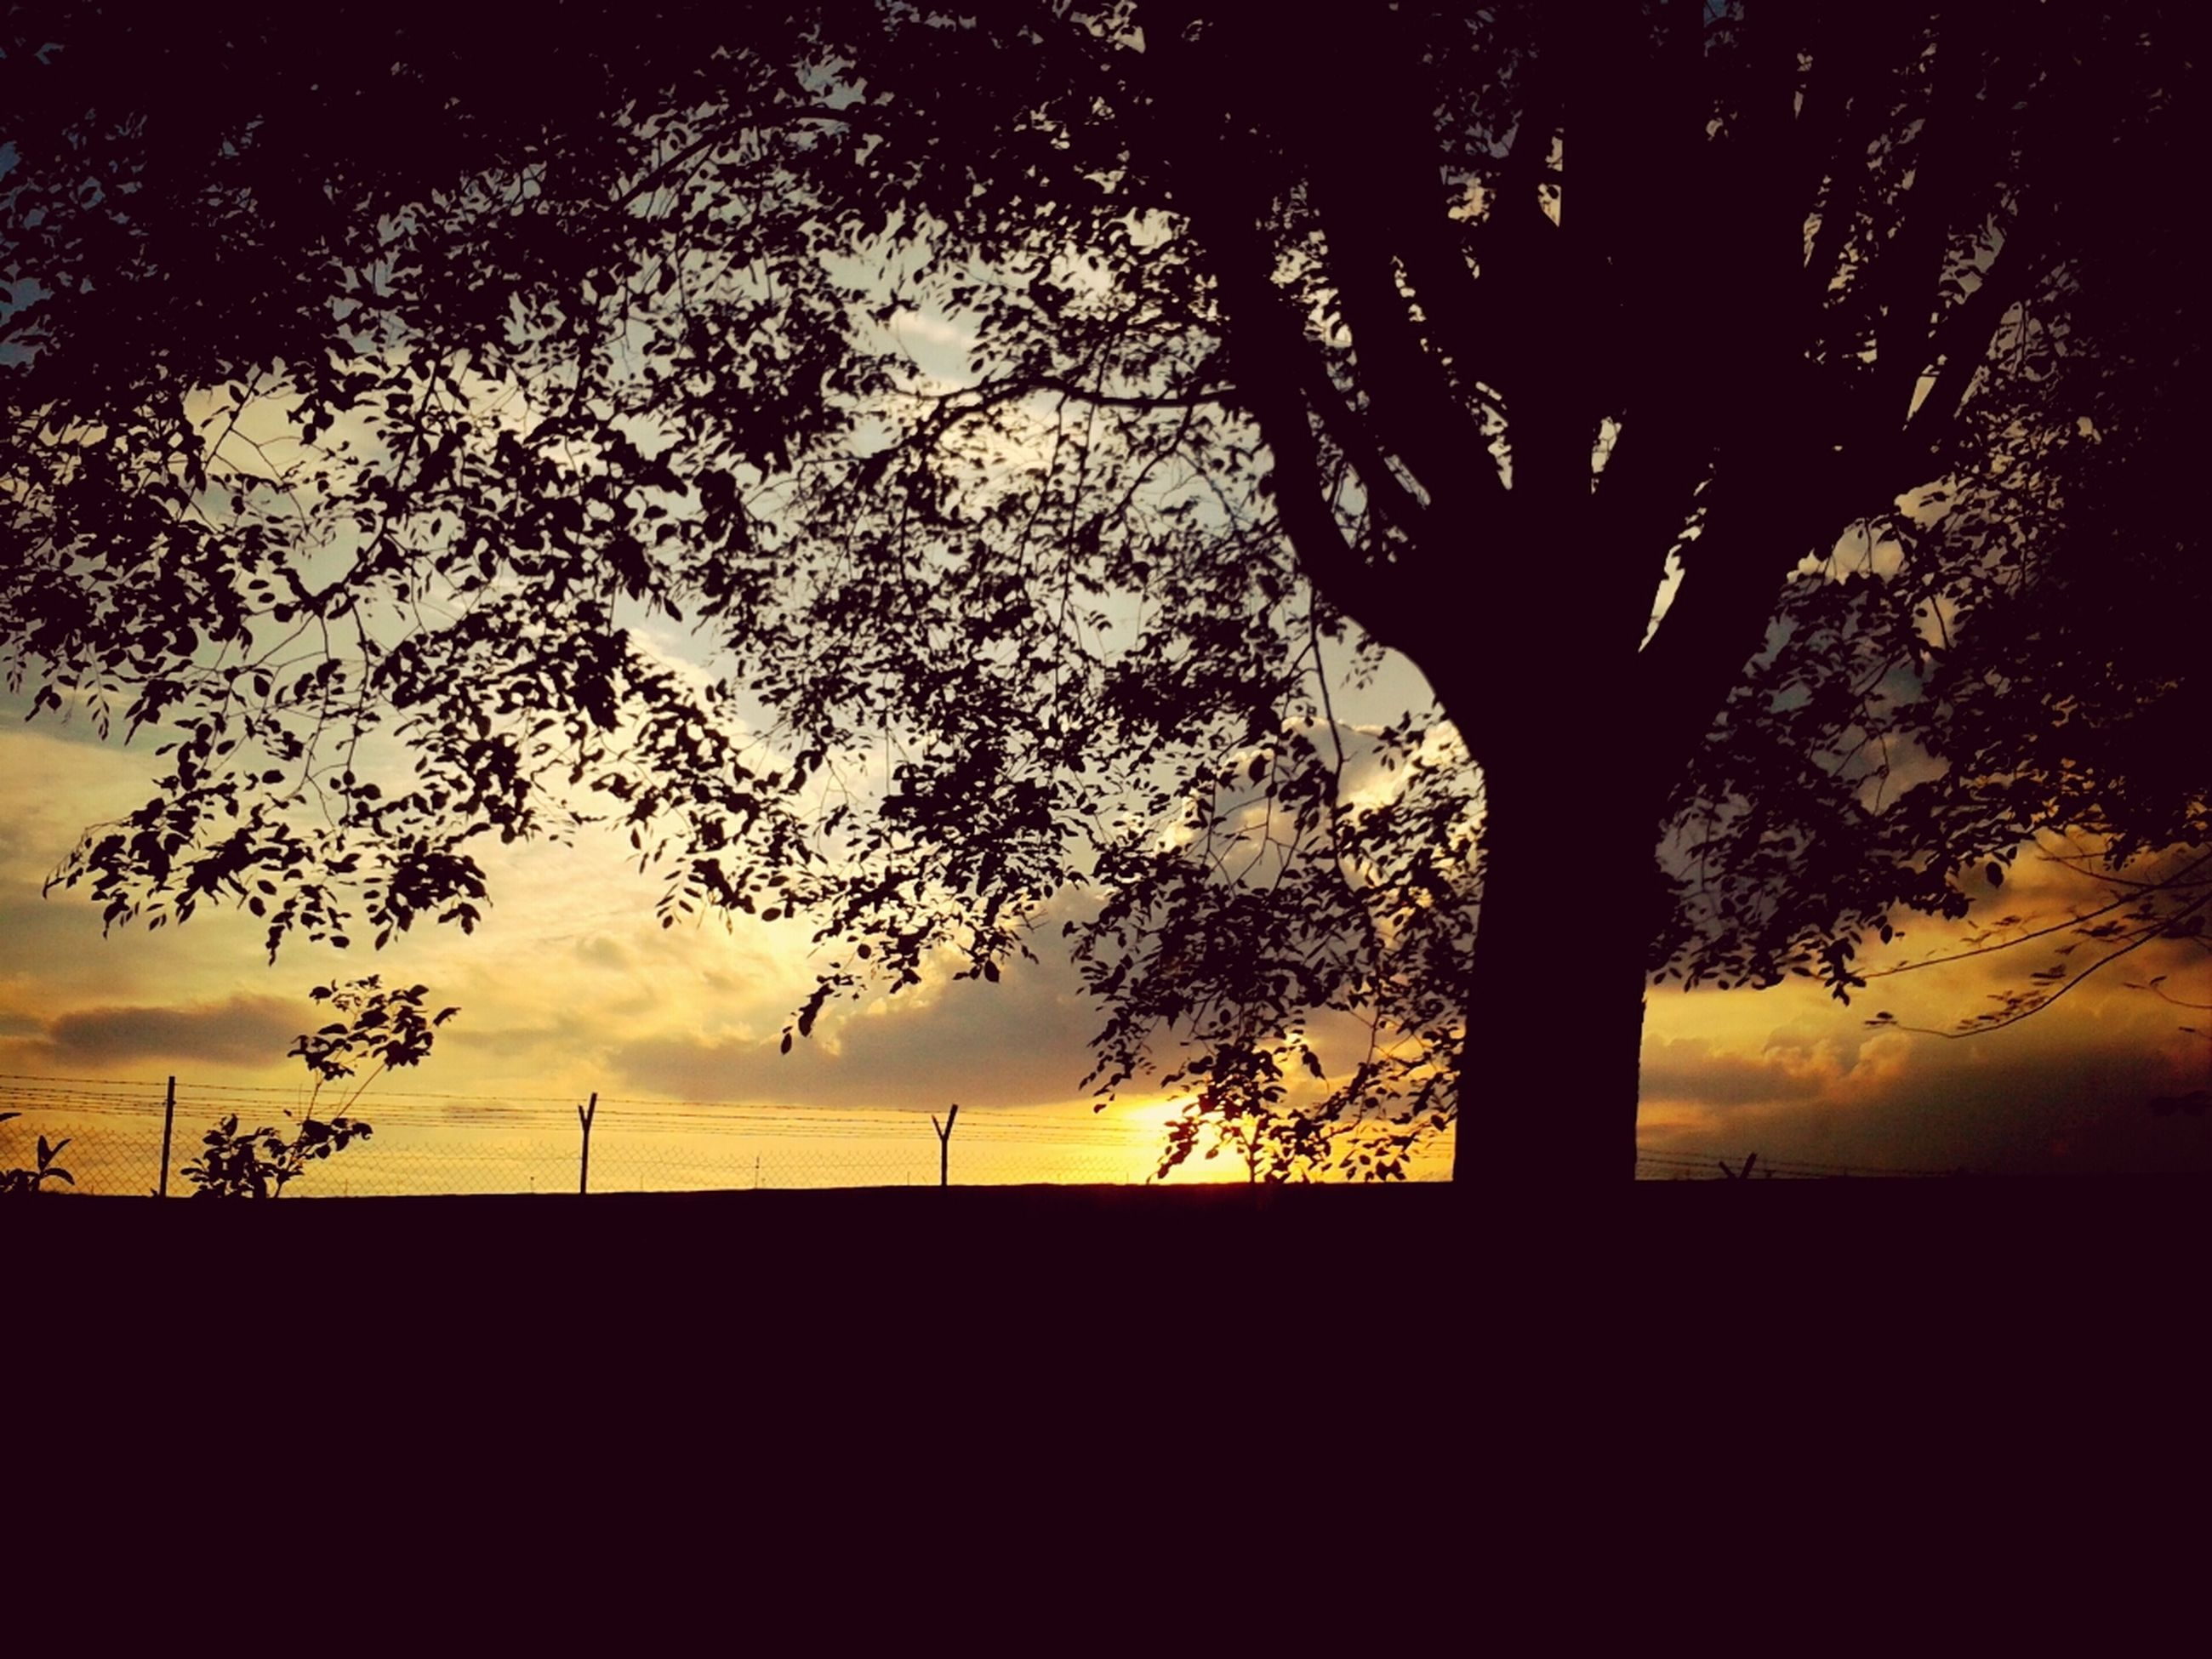 silhouette, tree, tranquility, tranquil scene, sunset, scenics, beauty in nature, sky, branch, nature, landscape, bare tree, tree trunk, field, idyllic, growth, non-urban scene, dark, no people, outdoors